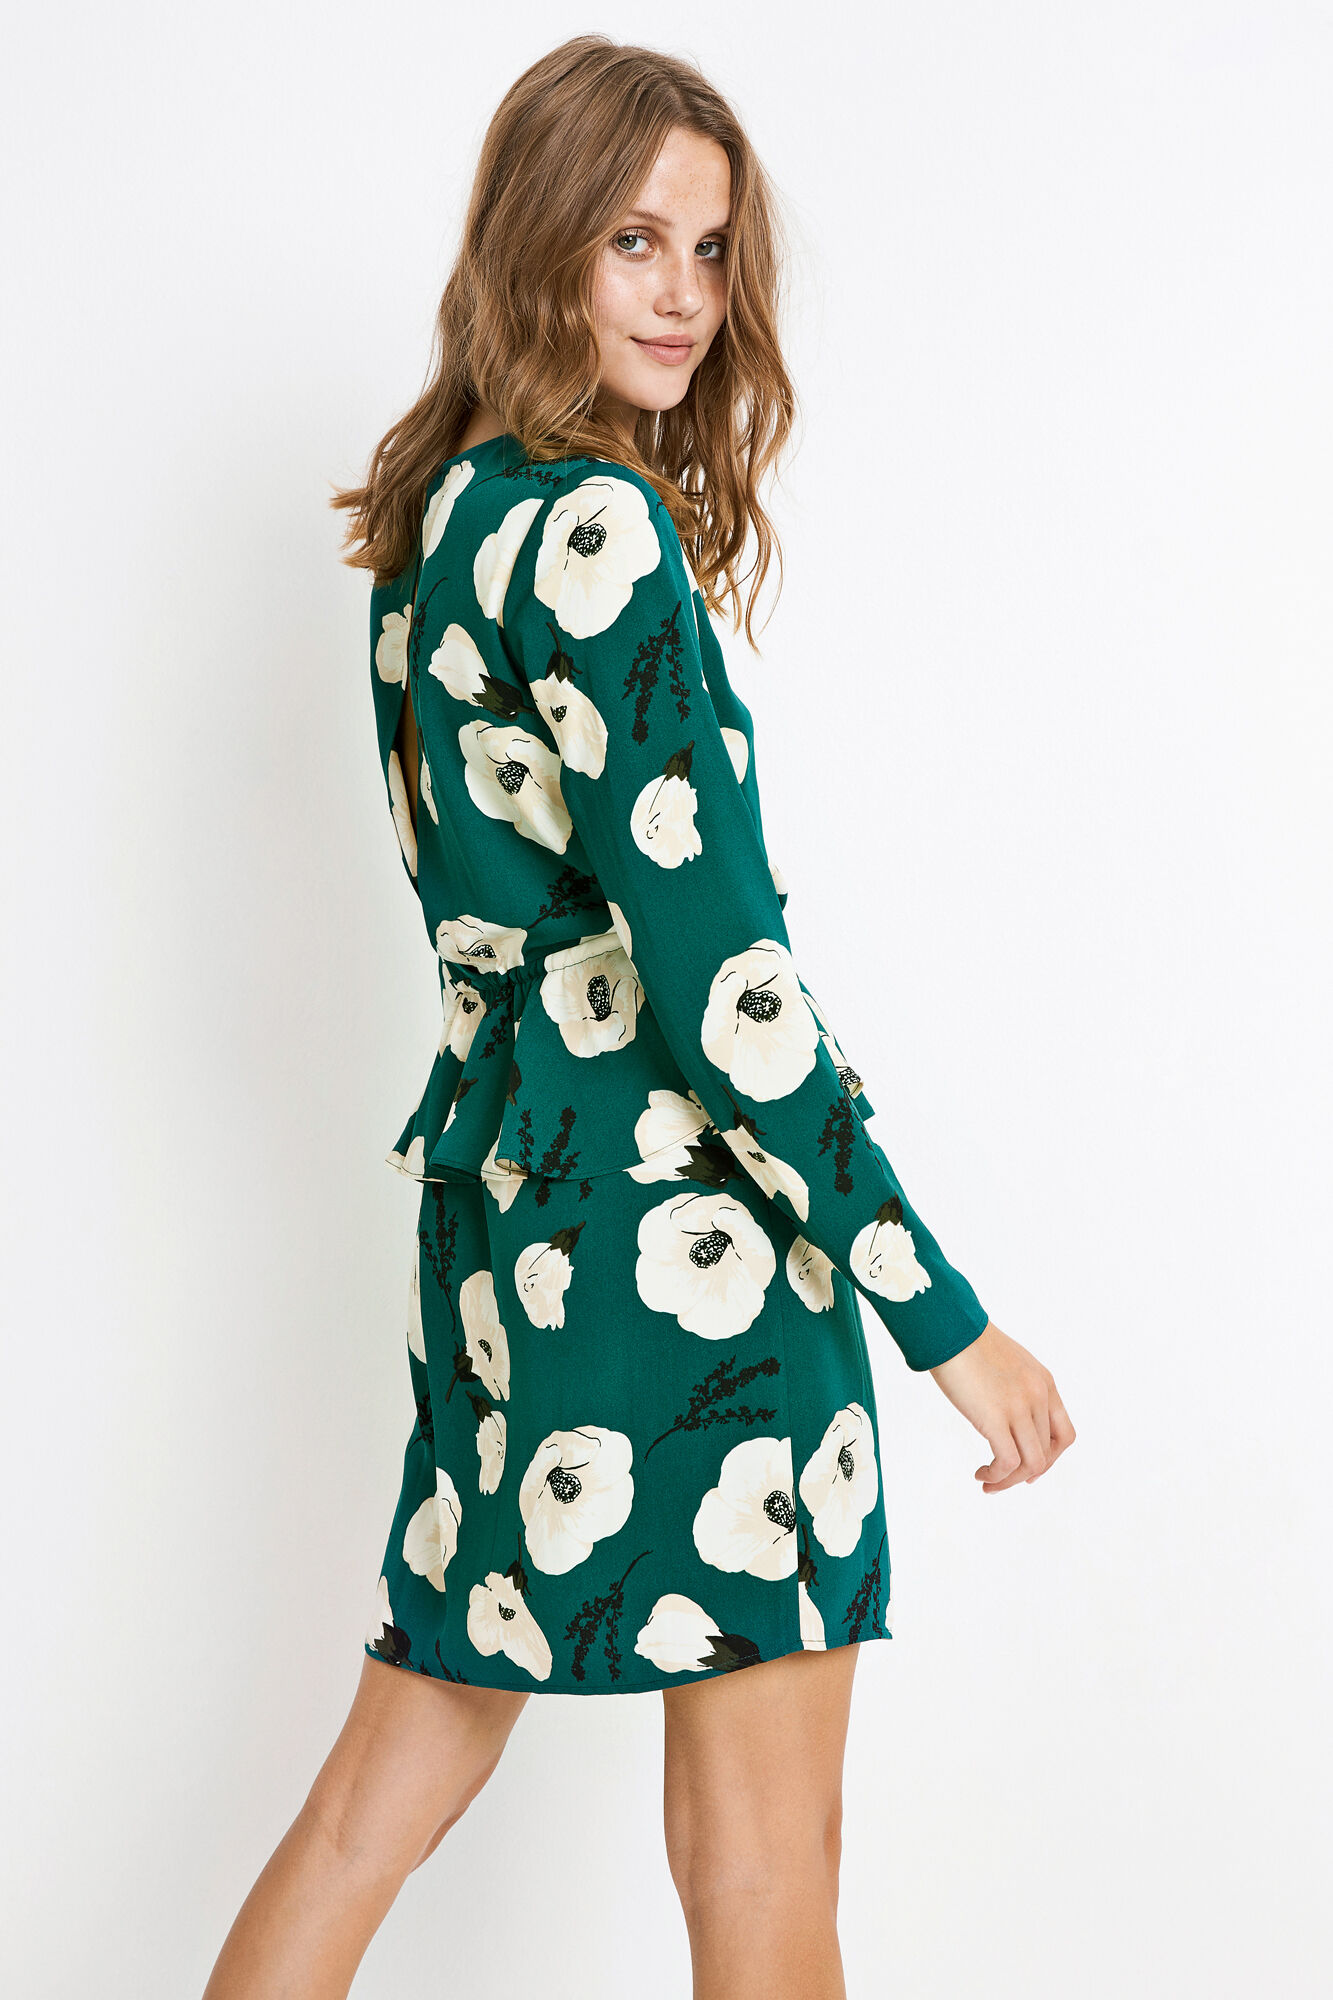 ENALPS LS DRESS AOP 6392, HIBISCUS AOP